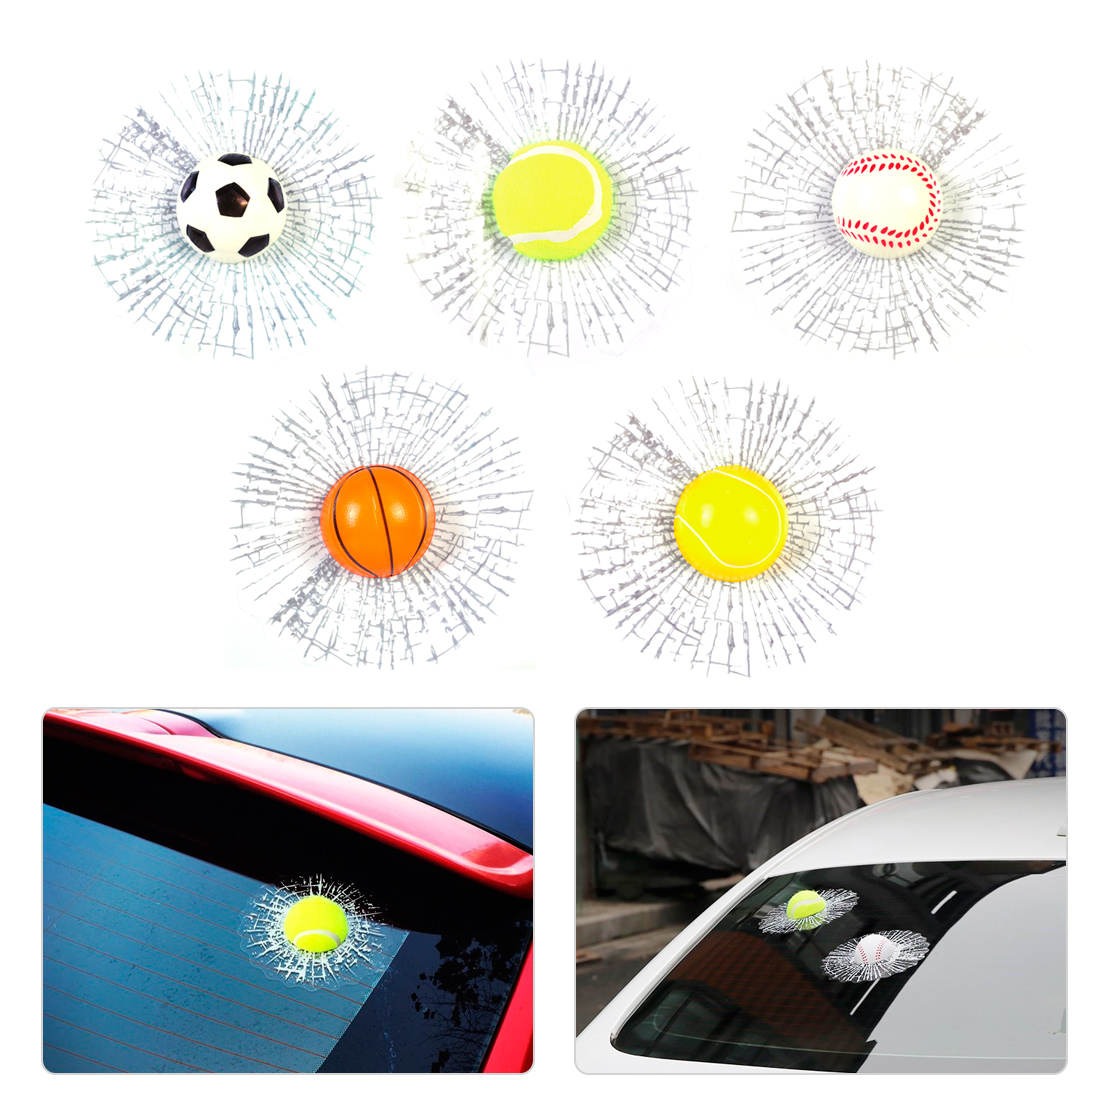 DWCX 3D Car Stickers Creative Funny Ball Hit Body Home Office Window Windshield Glass Surface Self Adhesive Basketball Football